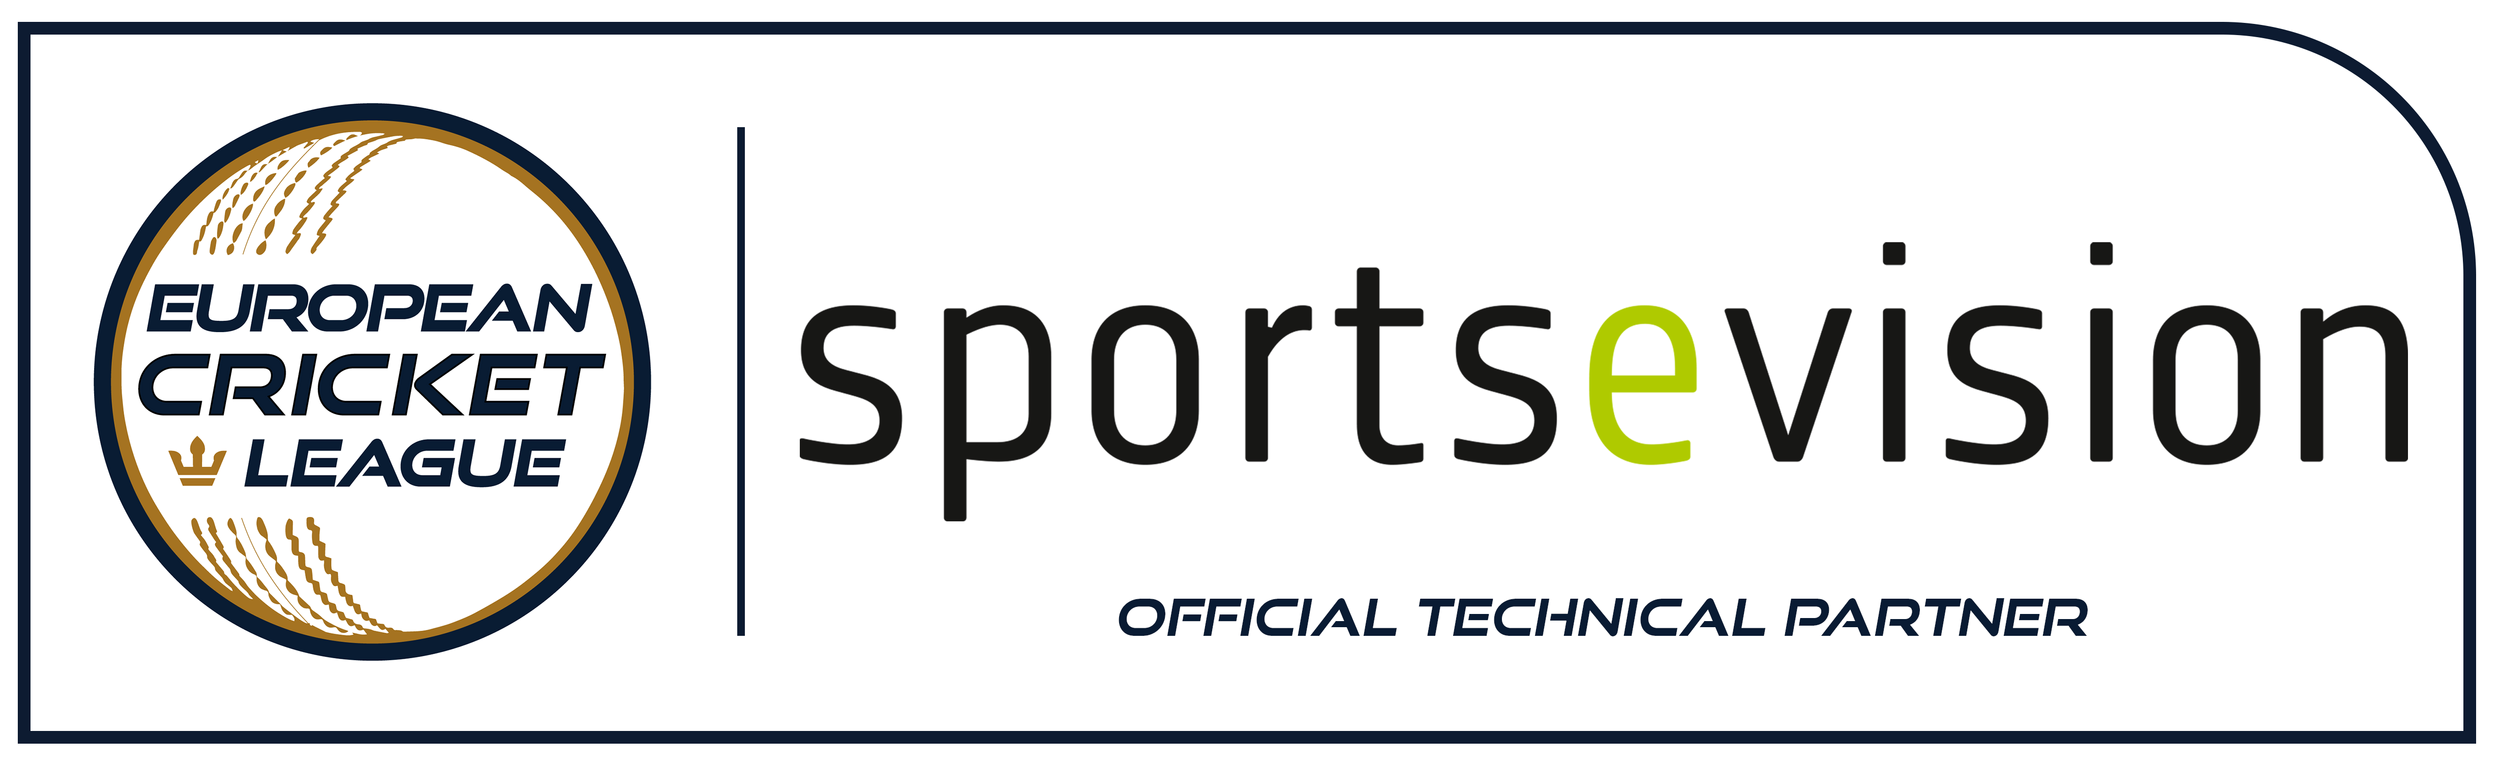 Sportsevision Technical Partner.png